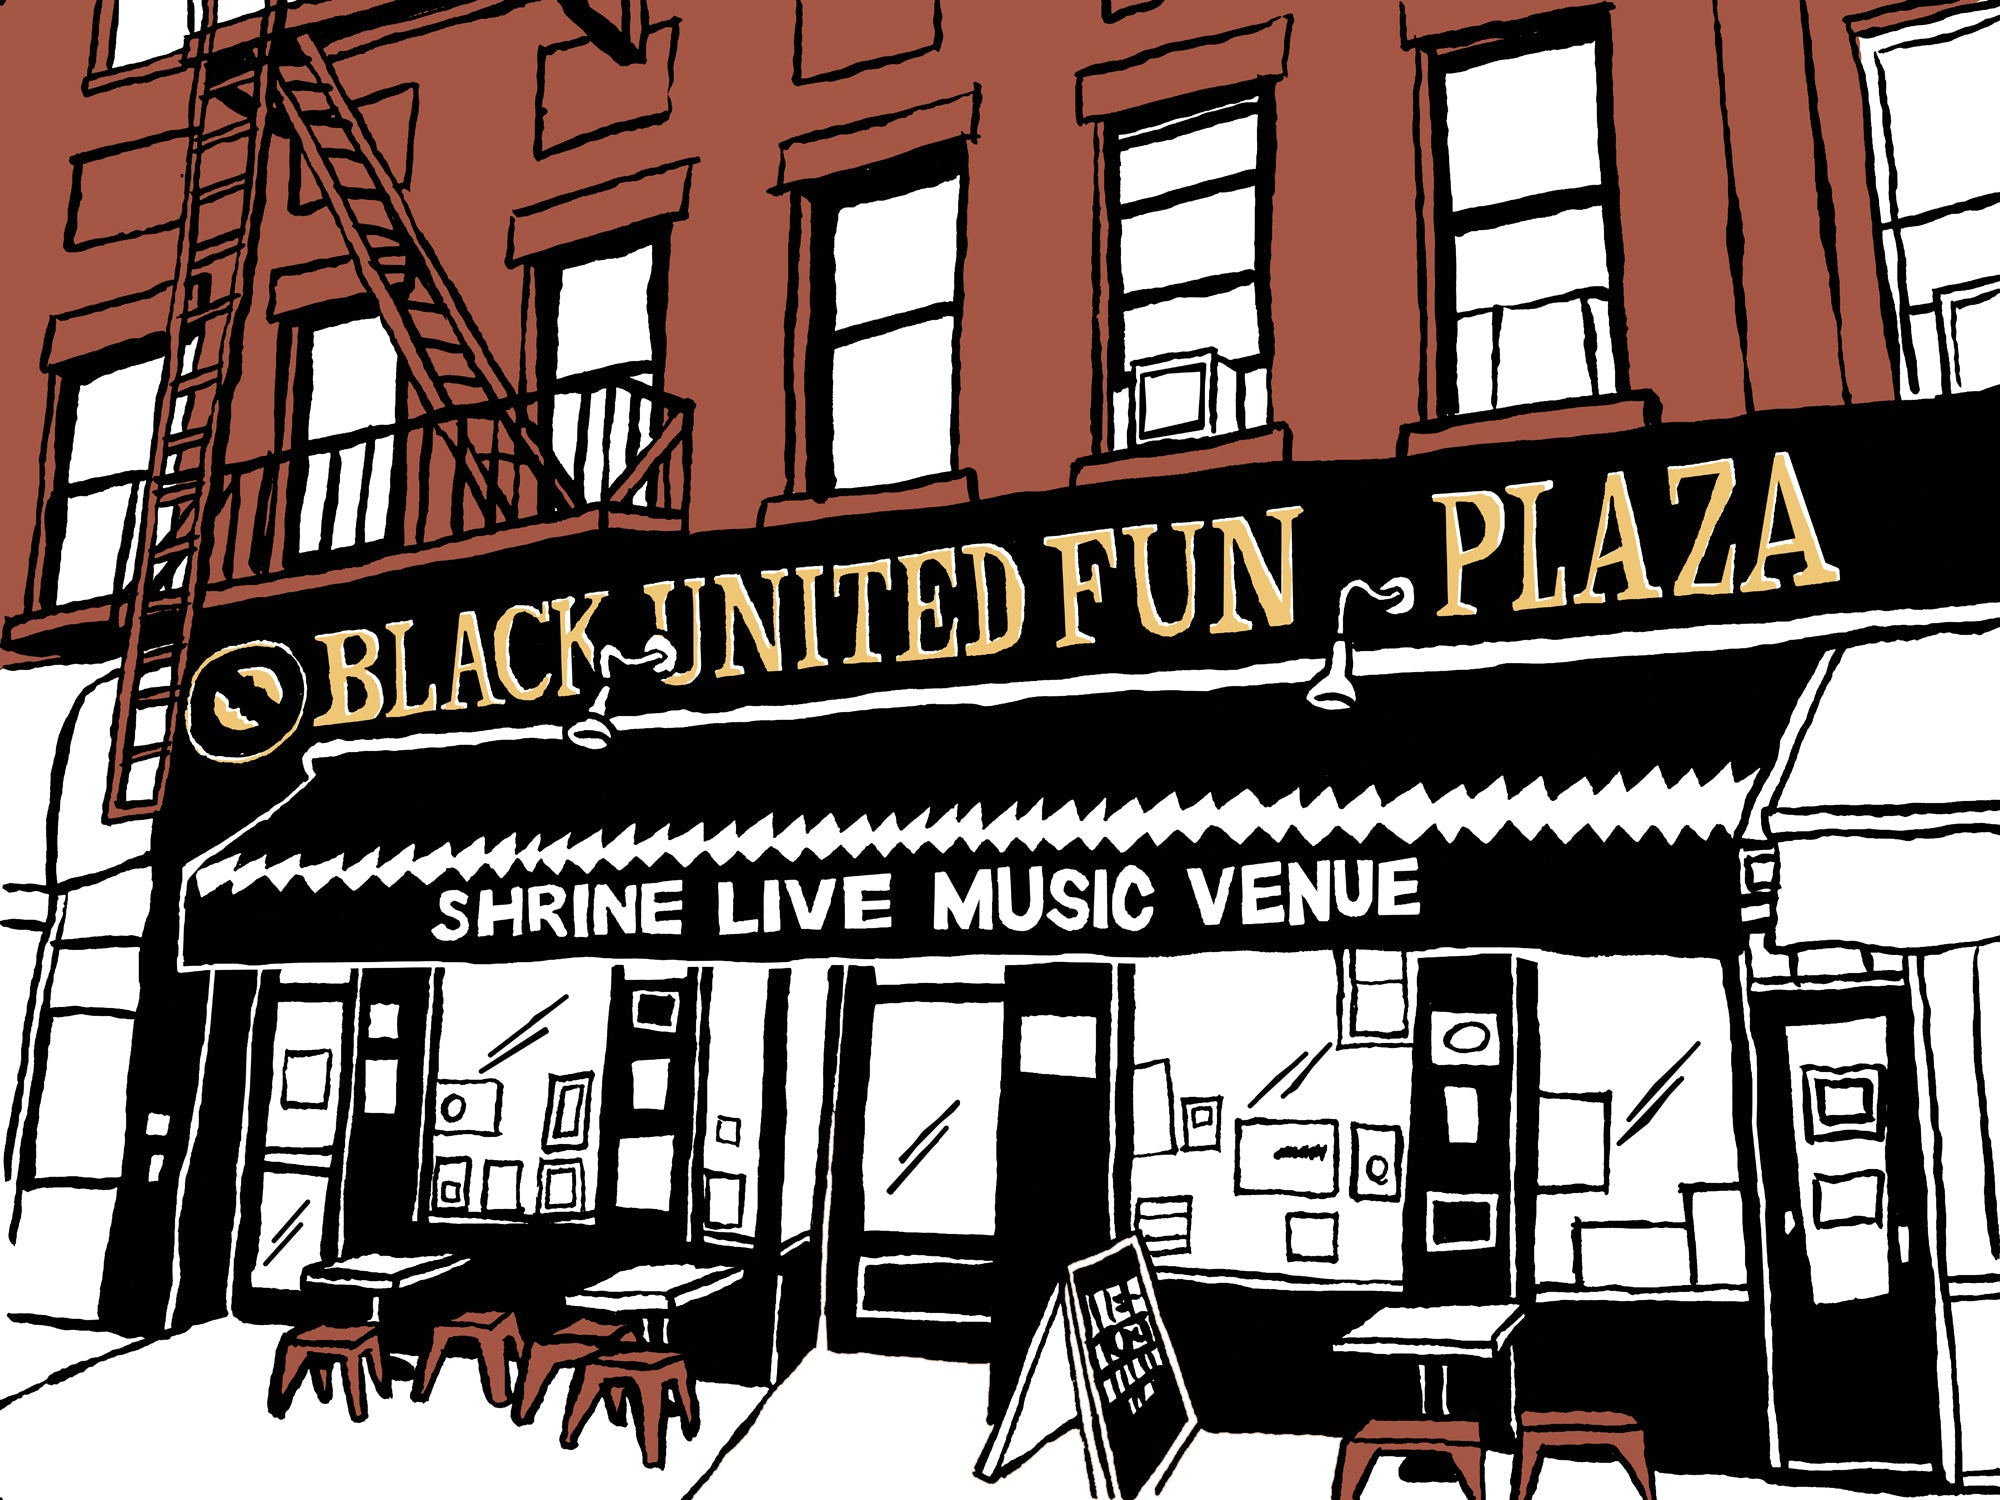 shrine world music venue harlem nyc art by john tebeau